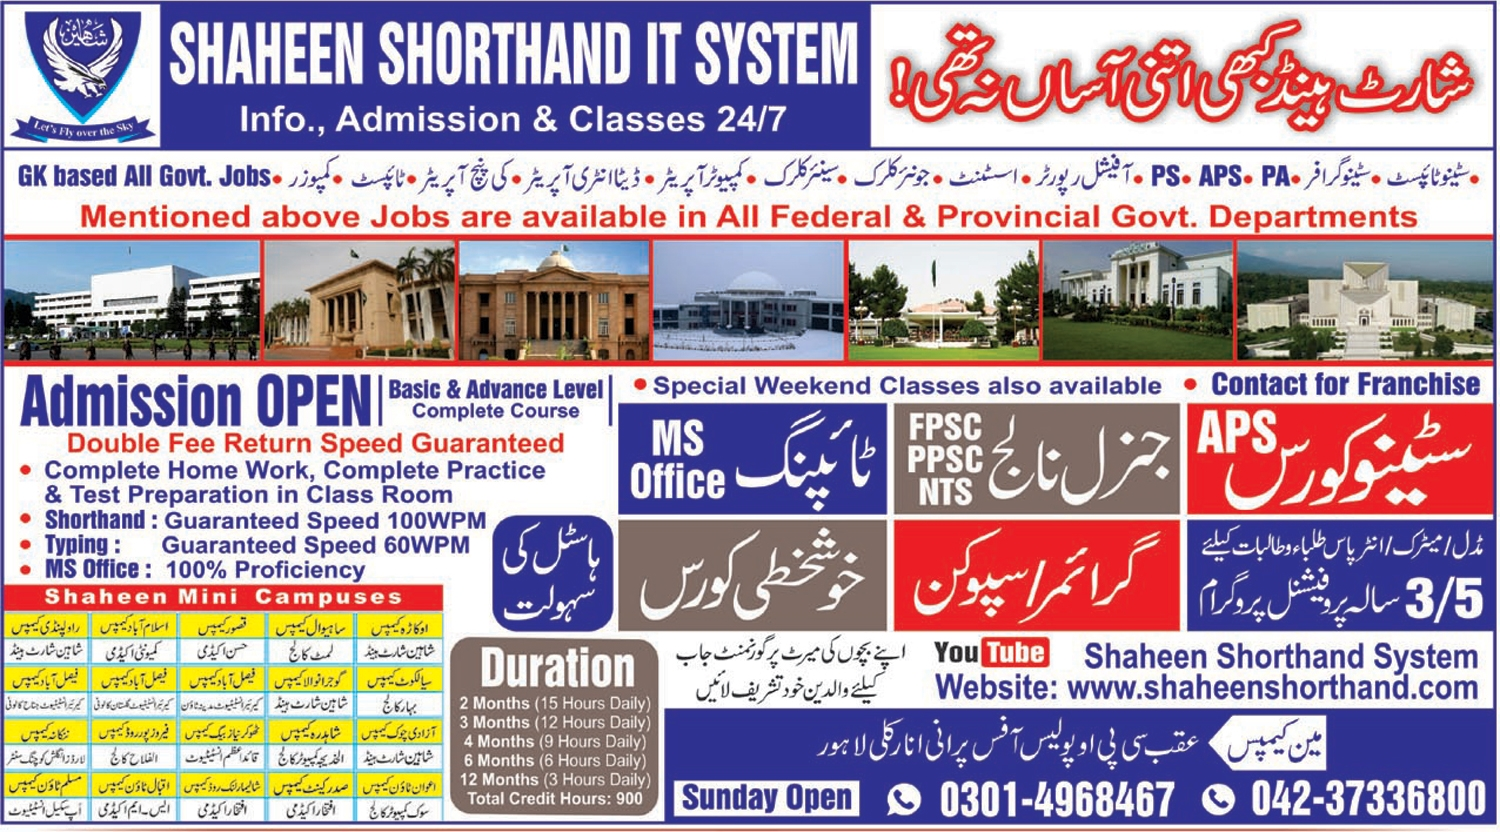 Shaheen Shorthand College Lahore Admission 2021, Courses, Campuses